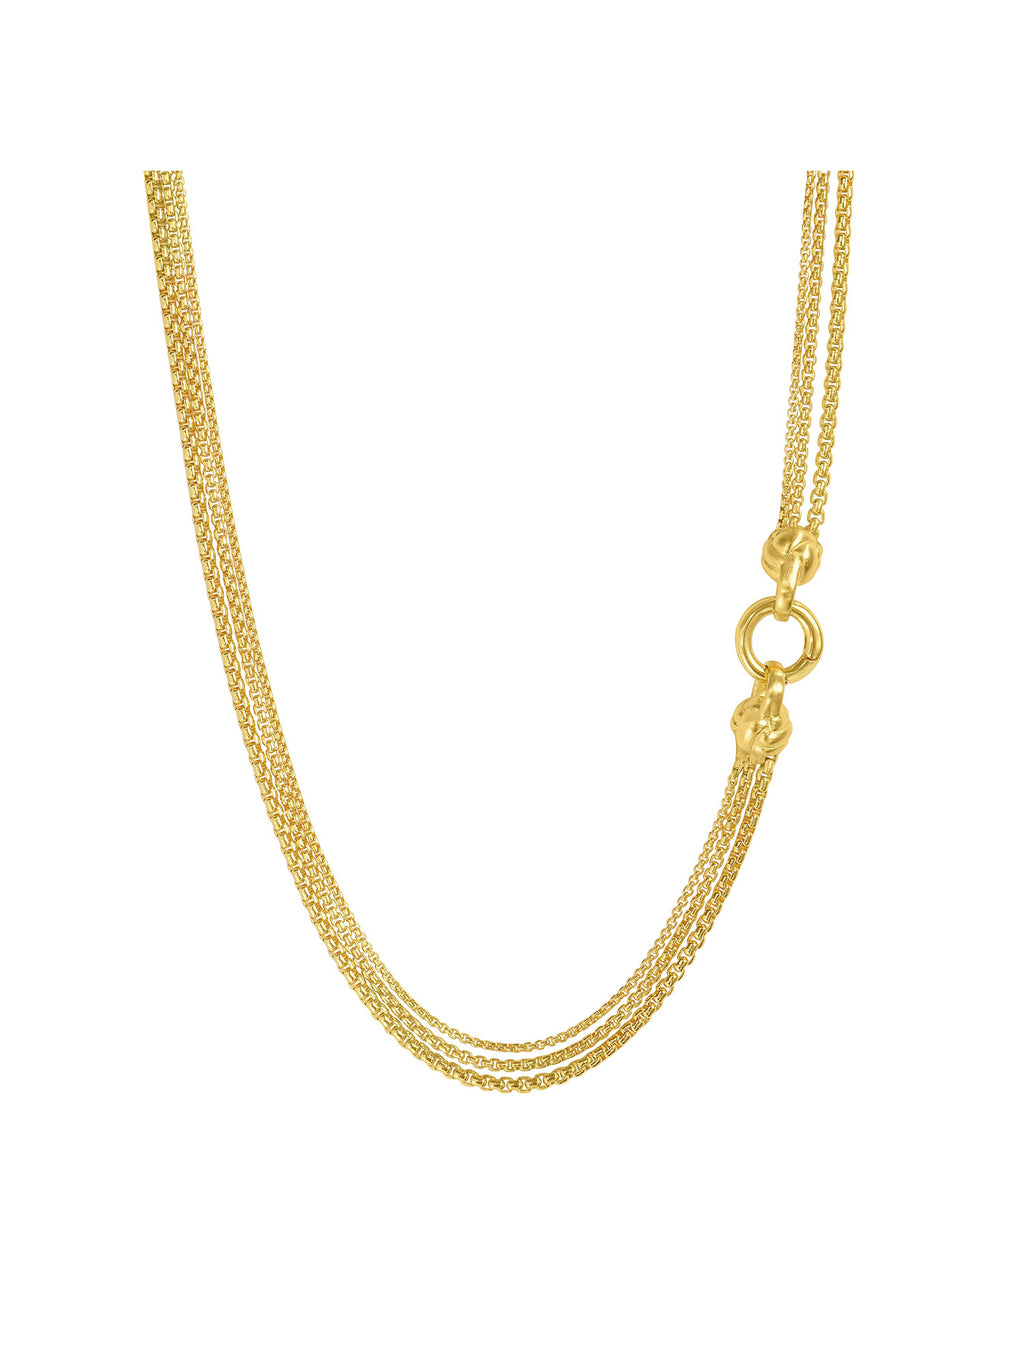 Dean Davidson Bali Weave Braided Chain Necklace - Gold